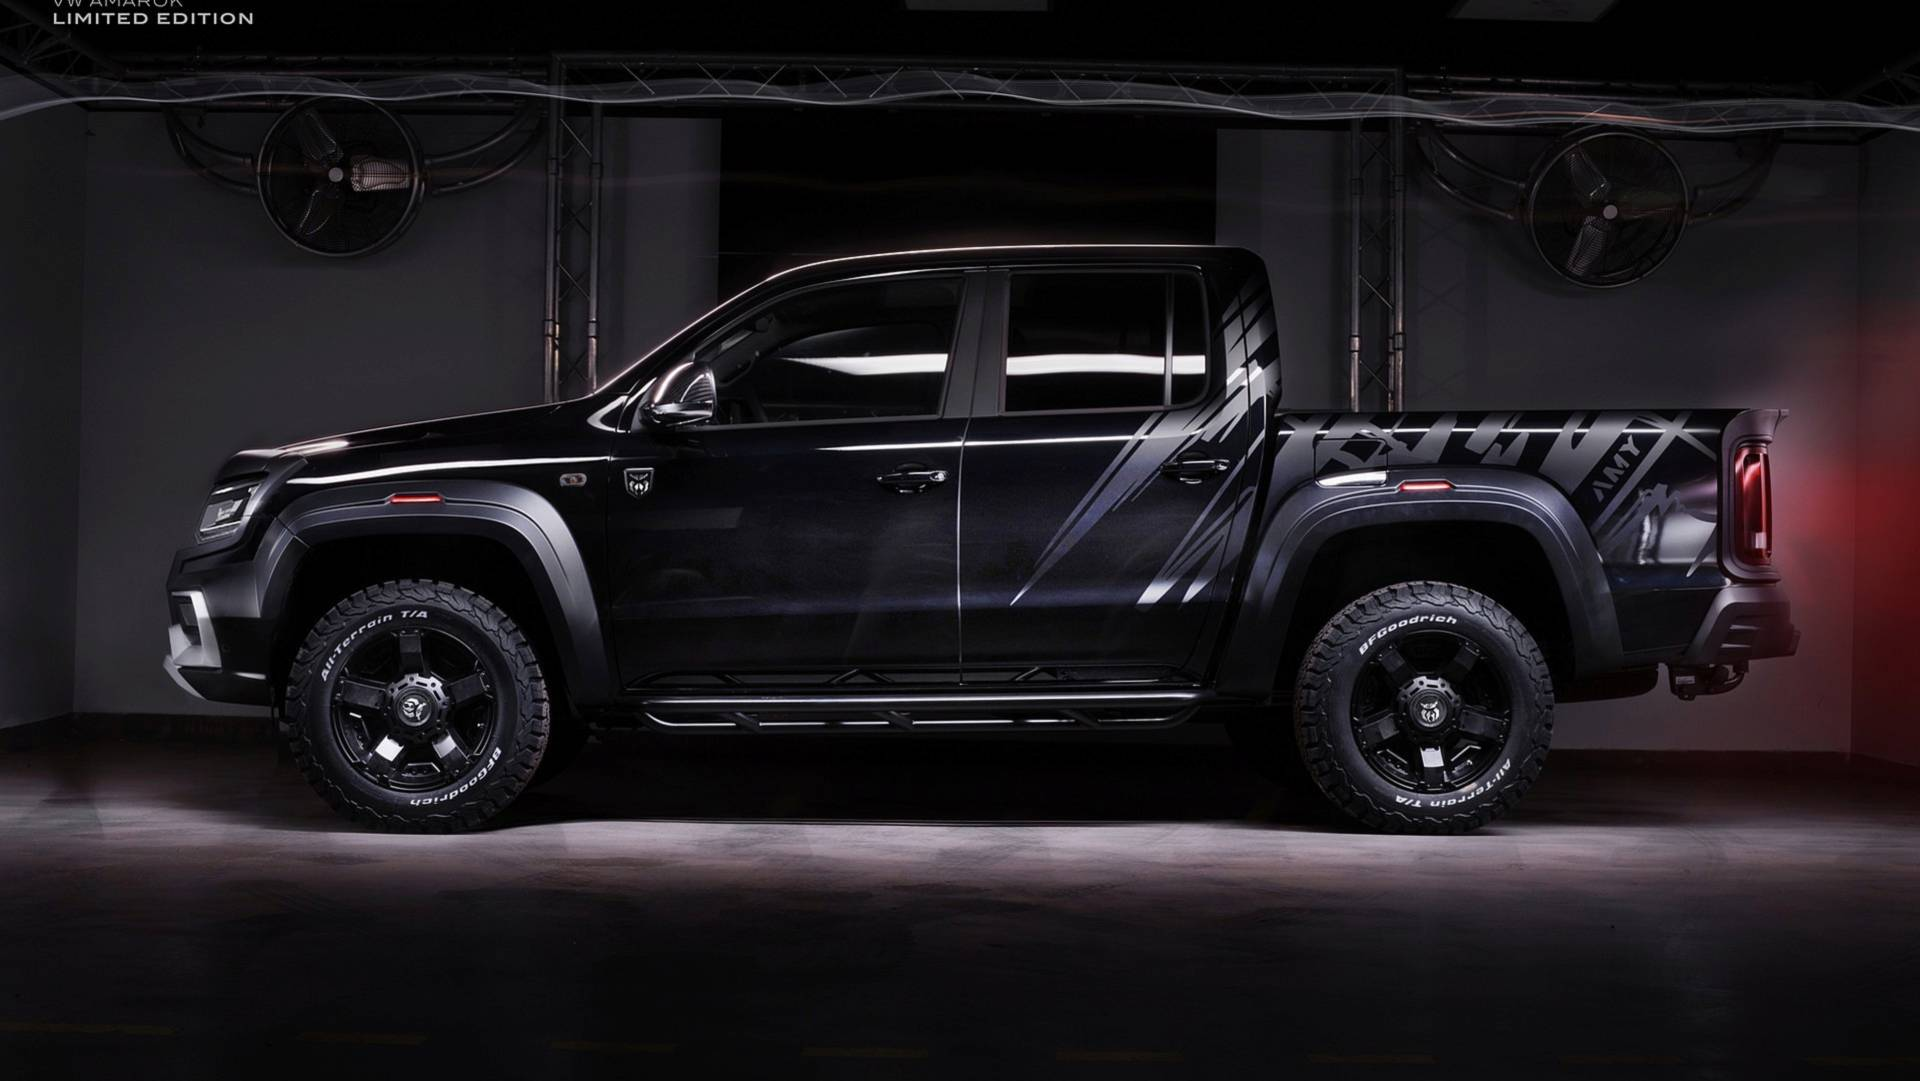 Carlex Design's Amarok Combines Rugged Exterior With Comfy Cabin